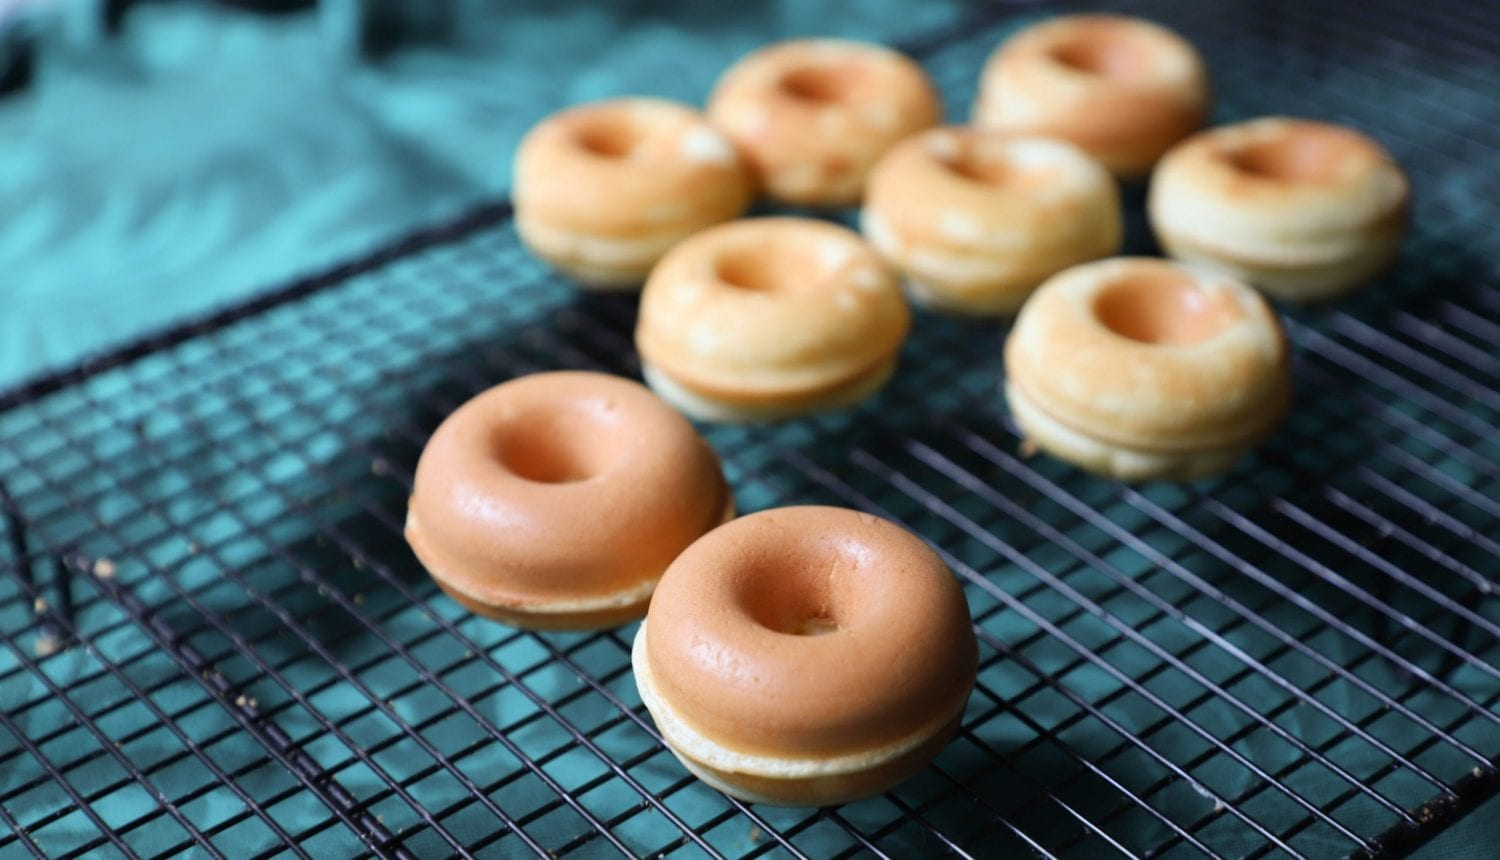 glazed donuts on a baking tray